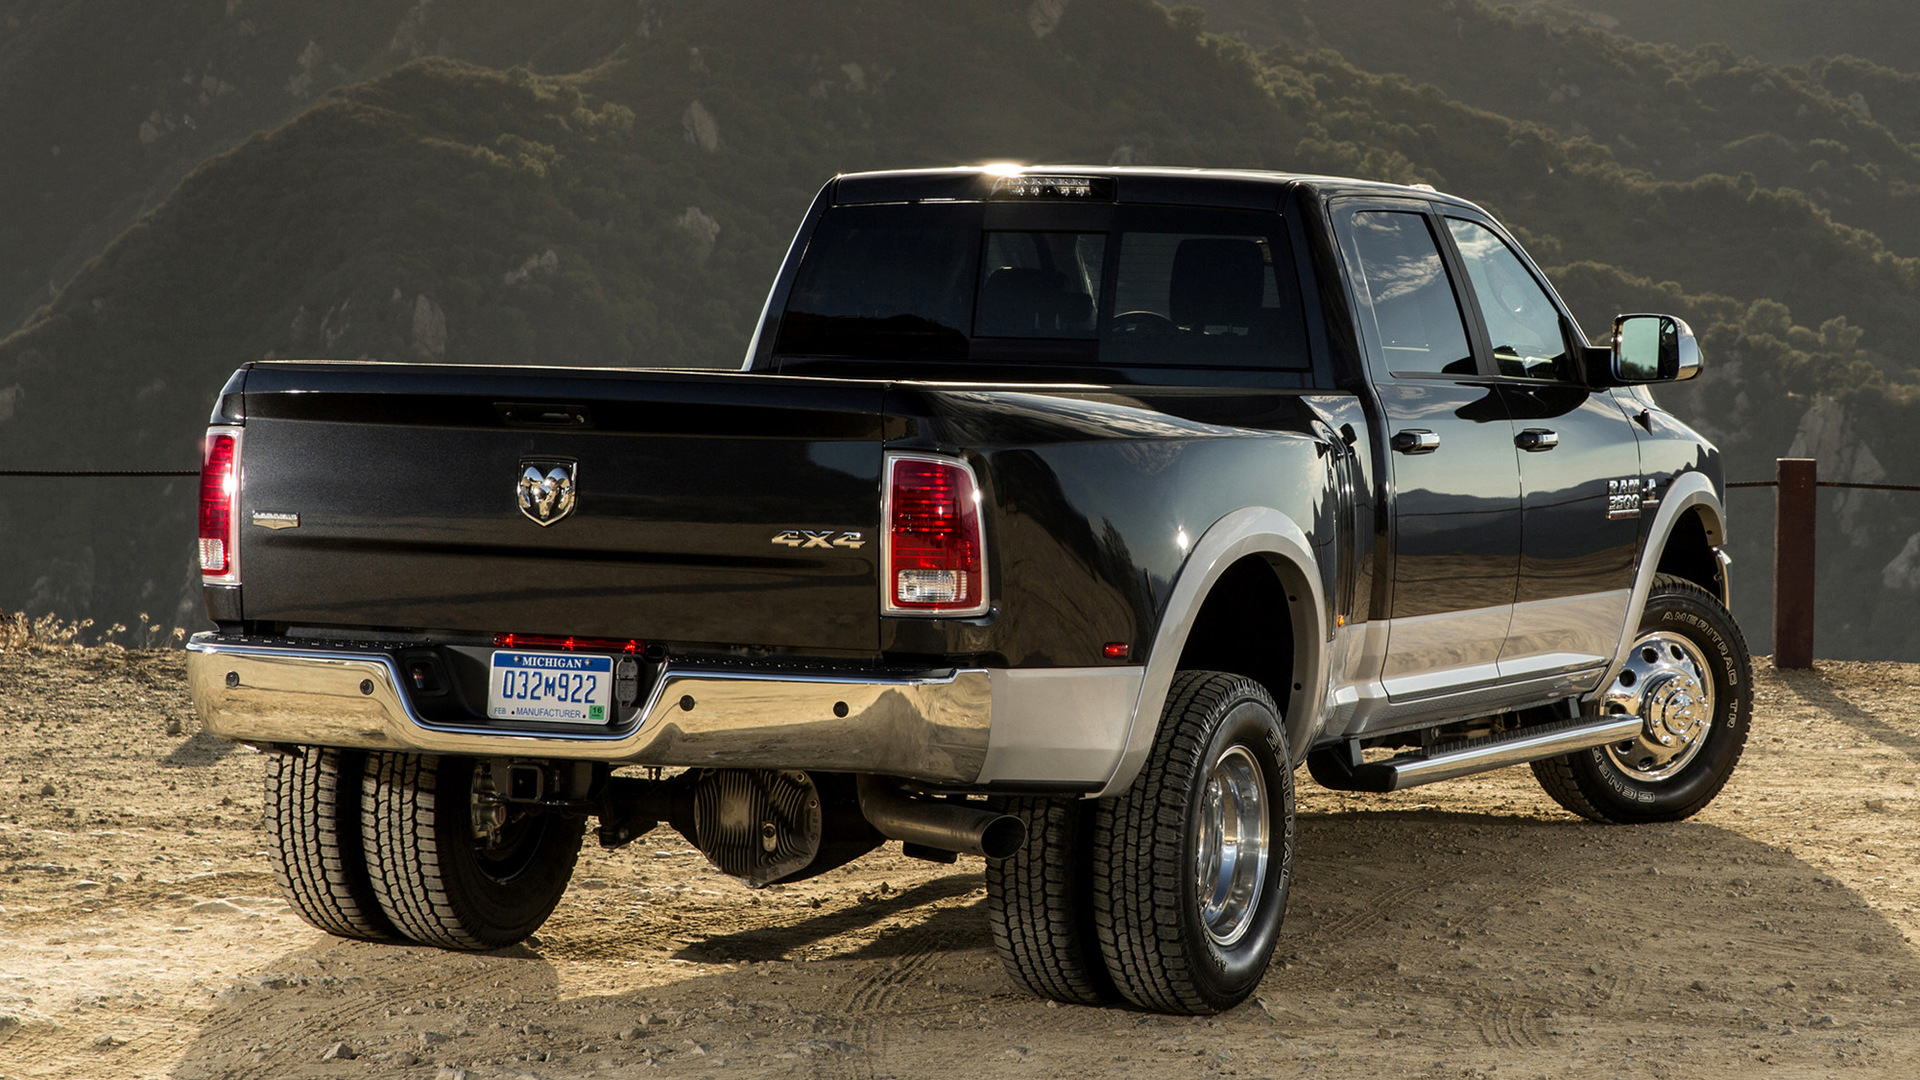 Ram 3500 Laramie Crew Cab 2012 Wallpapers And Hd Images